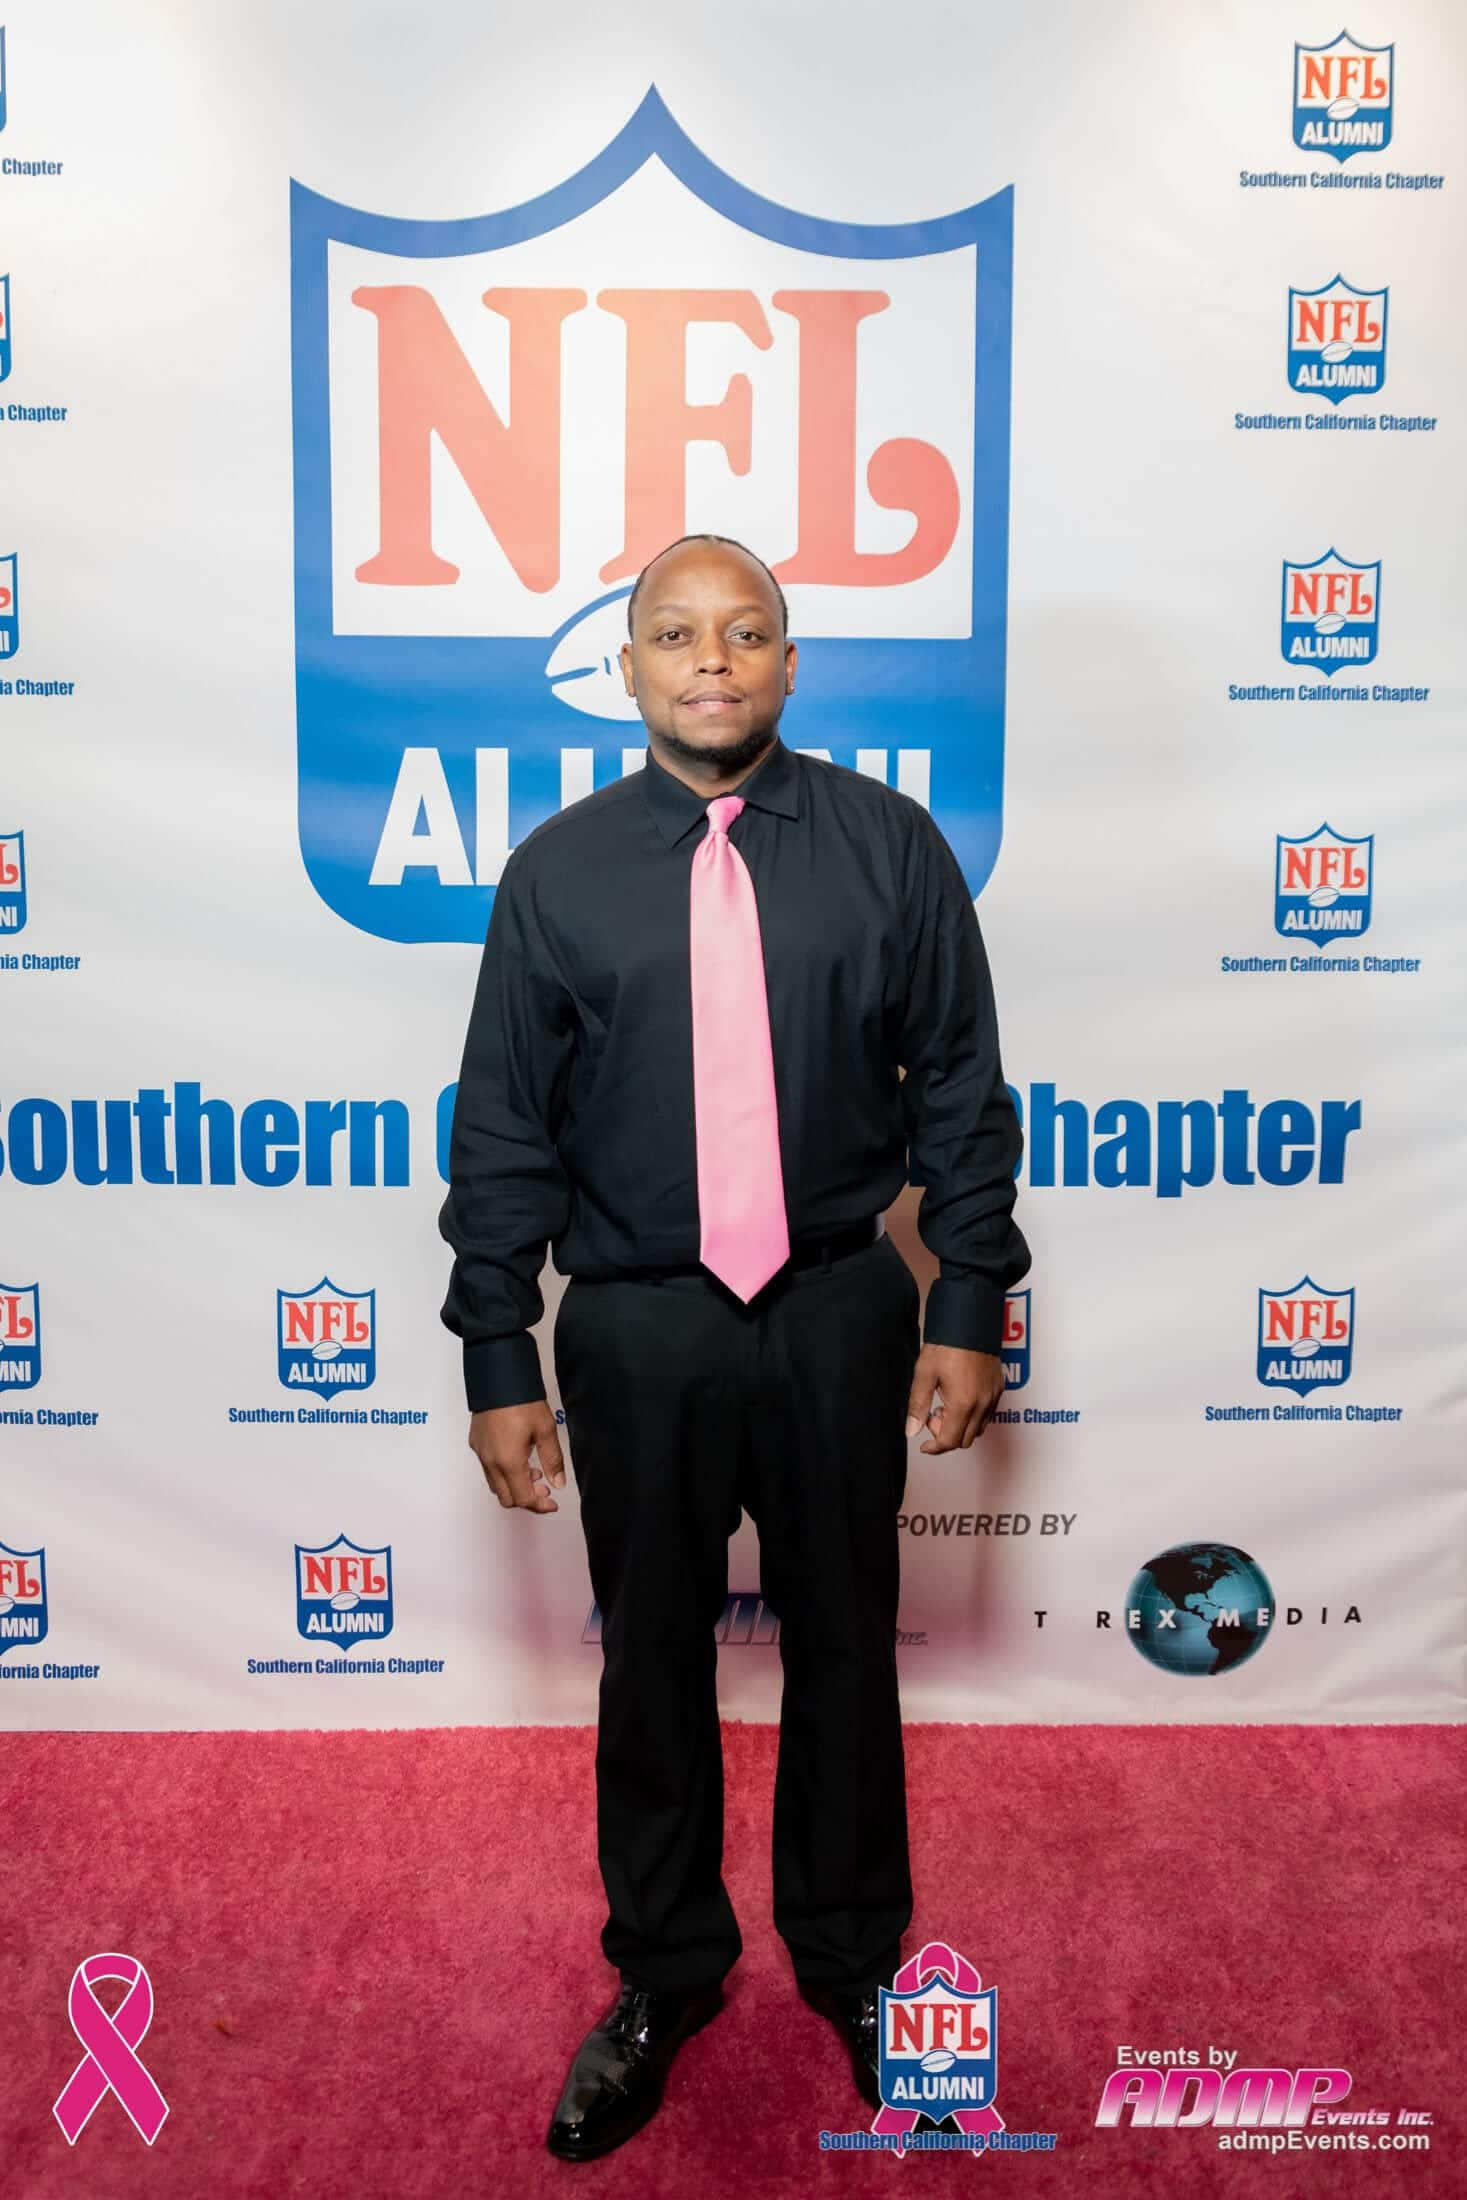 NFL Alumni SoCal Charity Event Series Breast Cancer Event 10-14-19-324